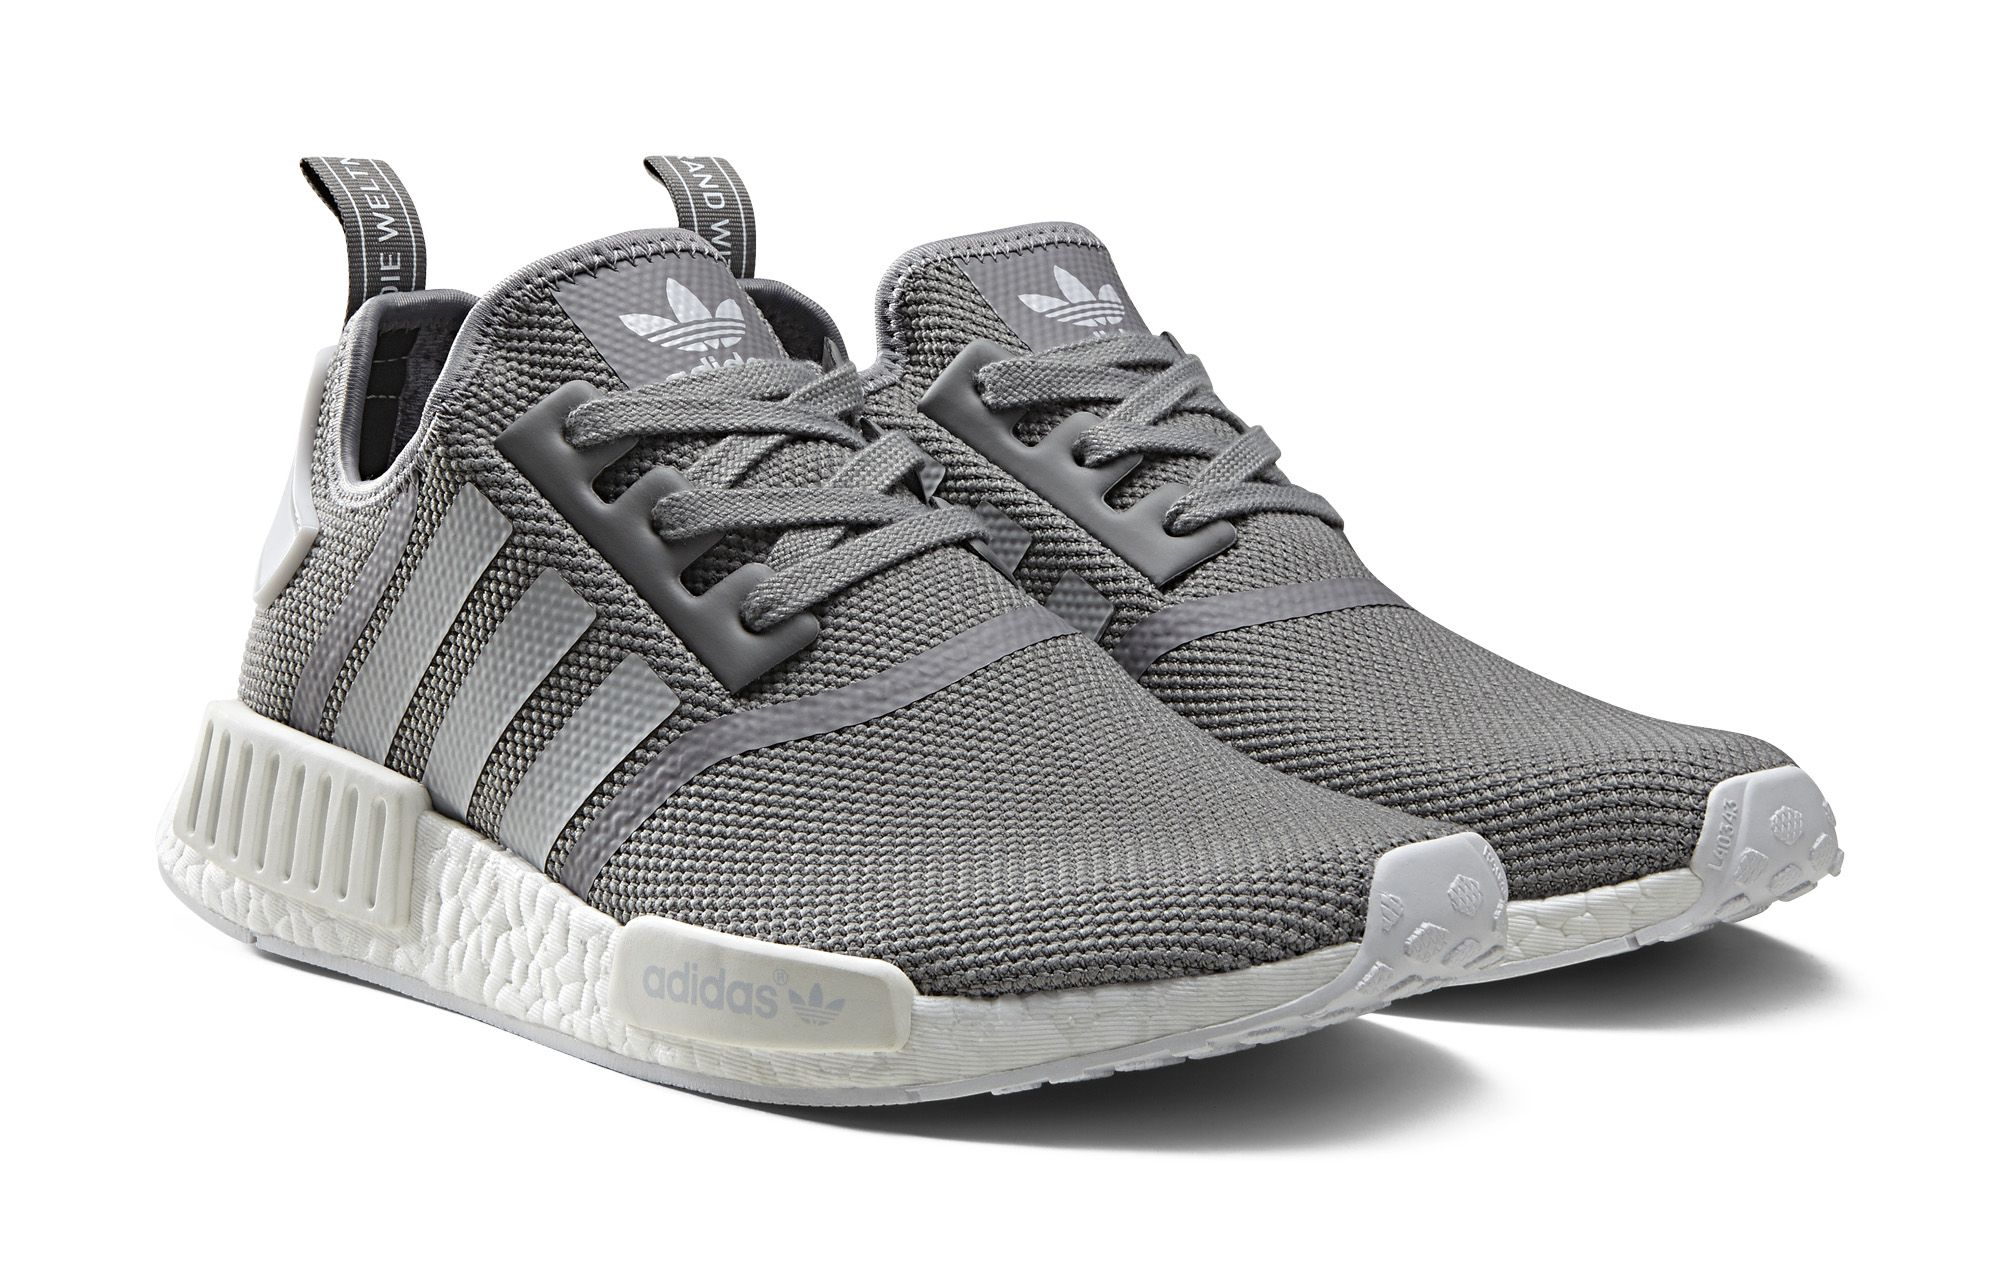 c4a816530 ... wholesale shop womens adidas gray size 8 sneakers at a discounted price  at poshmark. just